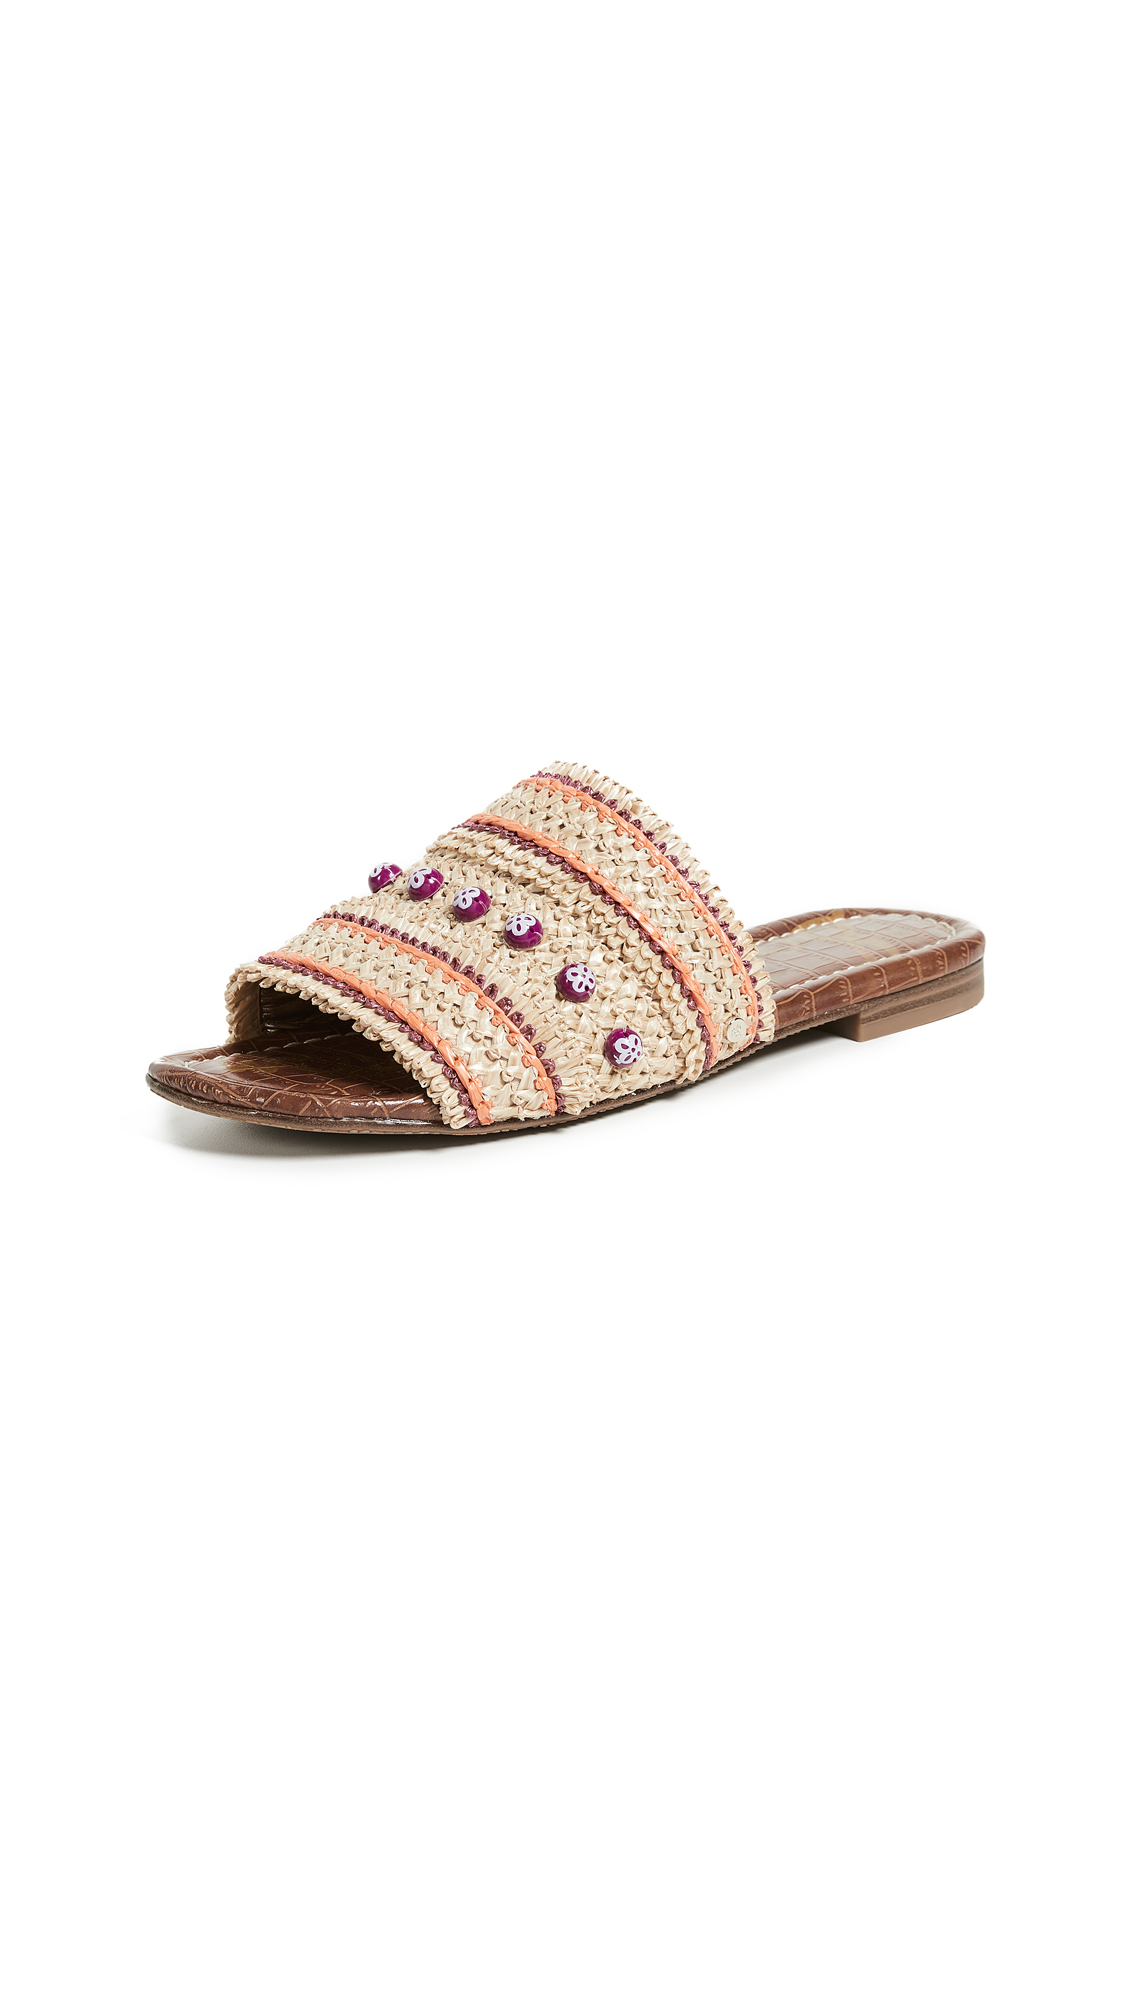 Sam Edelman Brandon Slides - Almond/Sedona Orange